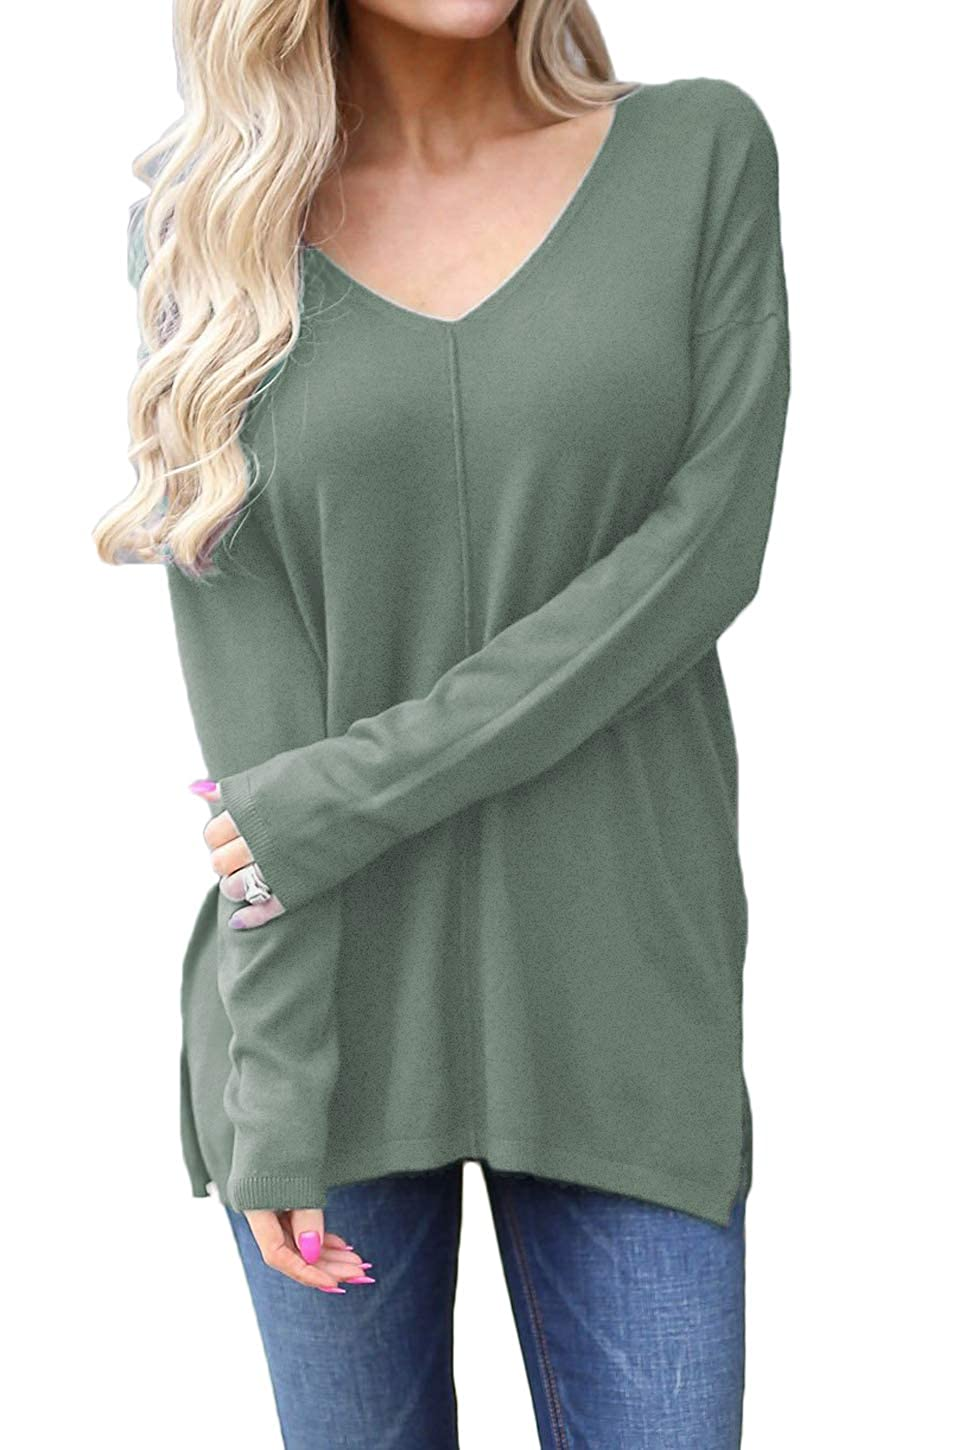 Newchoice Women's V-Neck Side Split Long Sleeve Tshirts Loose Blouse Casual Tunic Top